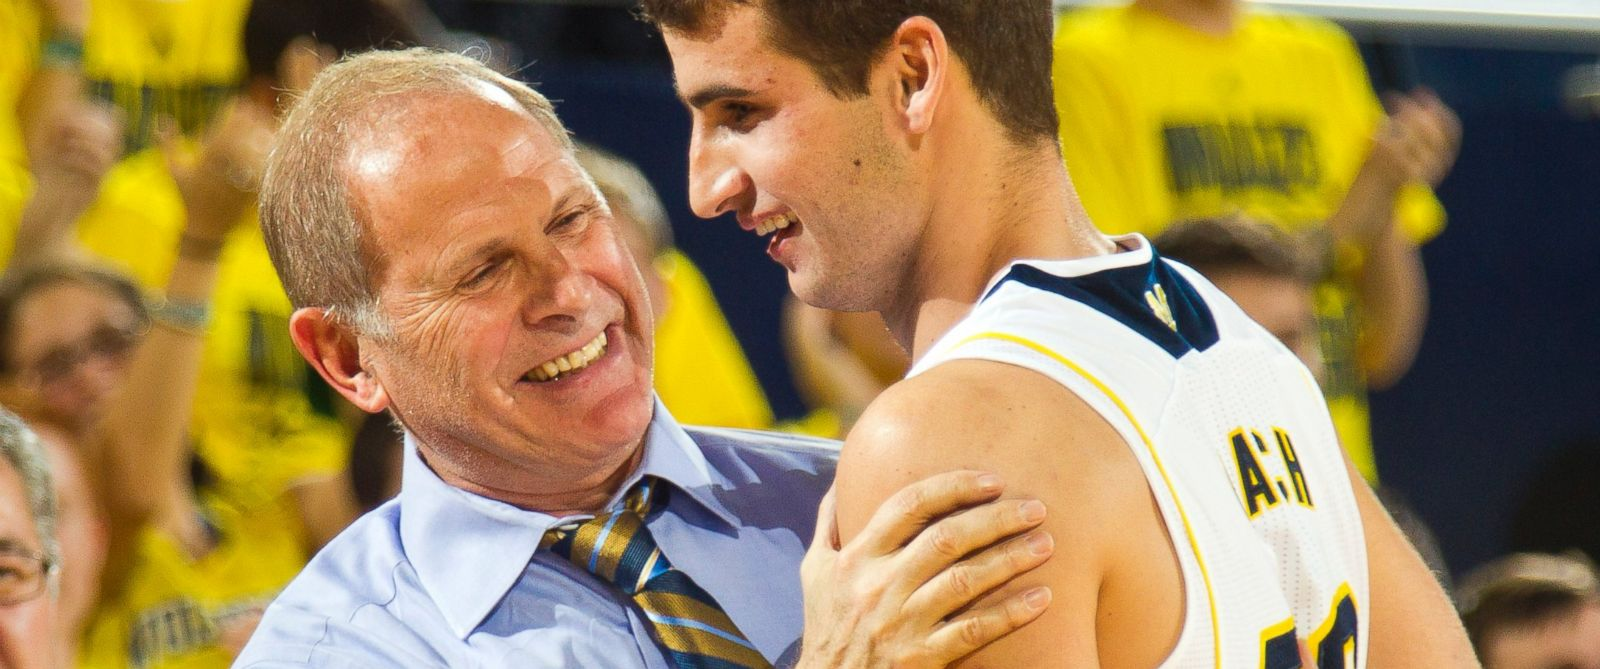 Michigan head coach John Beilein congratulates guard Austin Hatch after he made a free throw basket in the second half of an NCAA college basketball exhibition game against Wayne State at Crisler Center in Ann Arbor, Mich., Nov. 10, 2014.